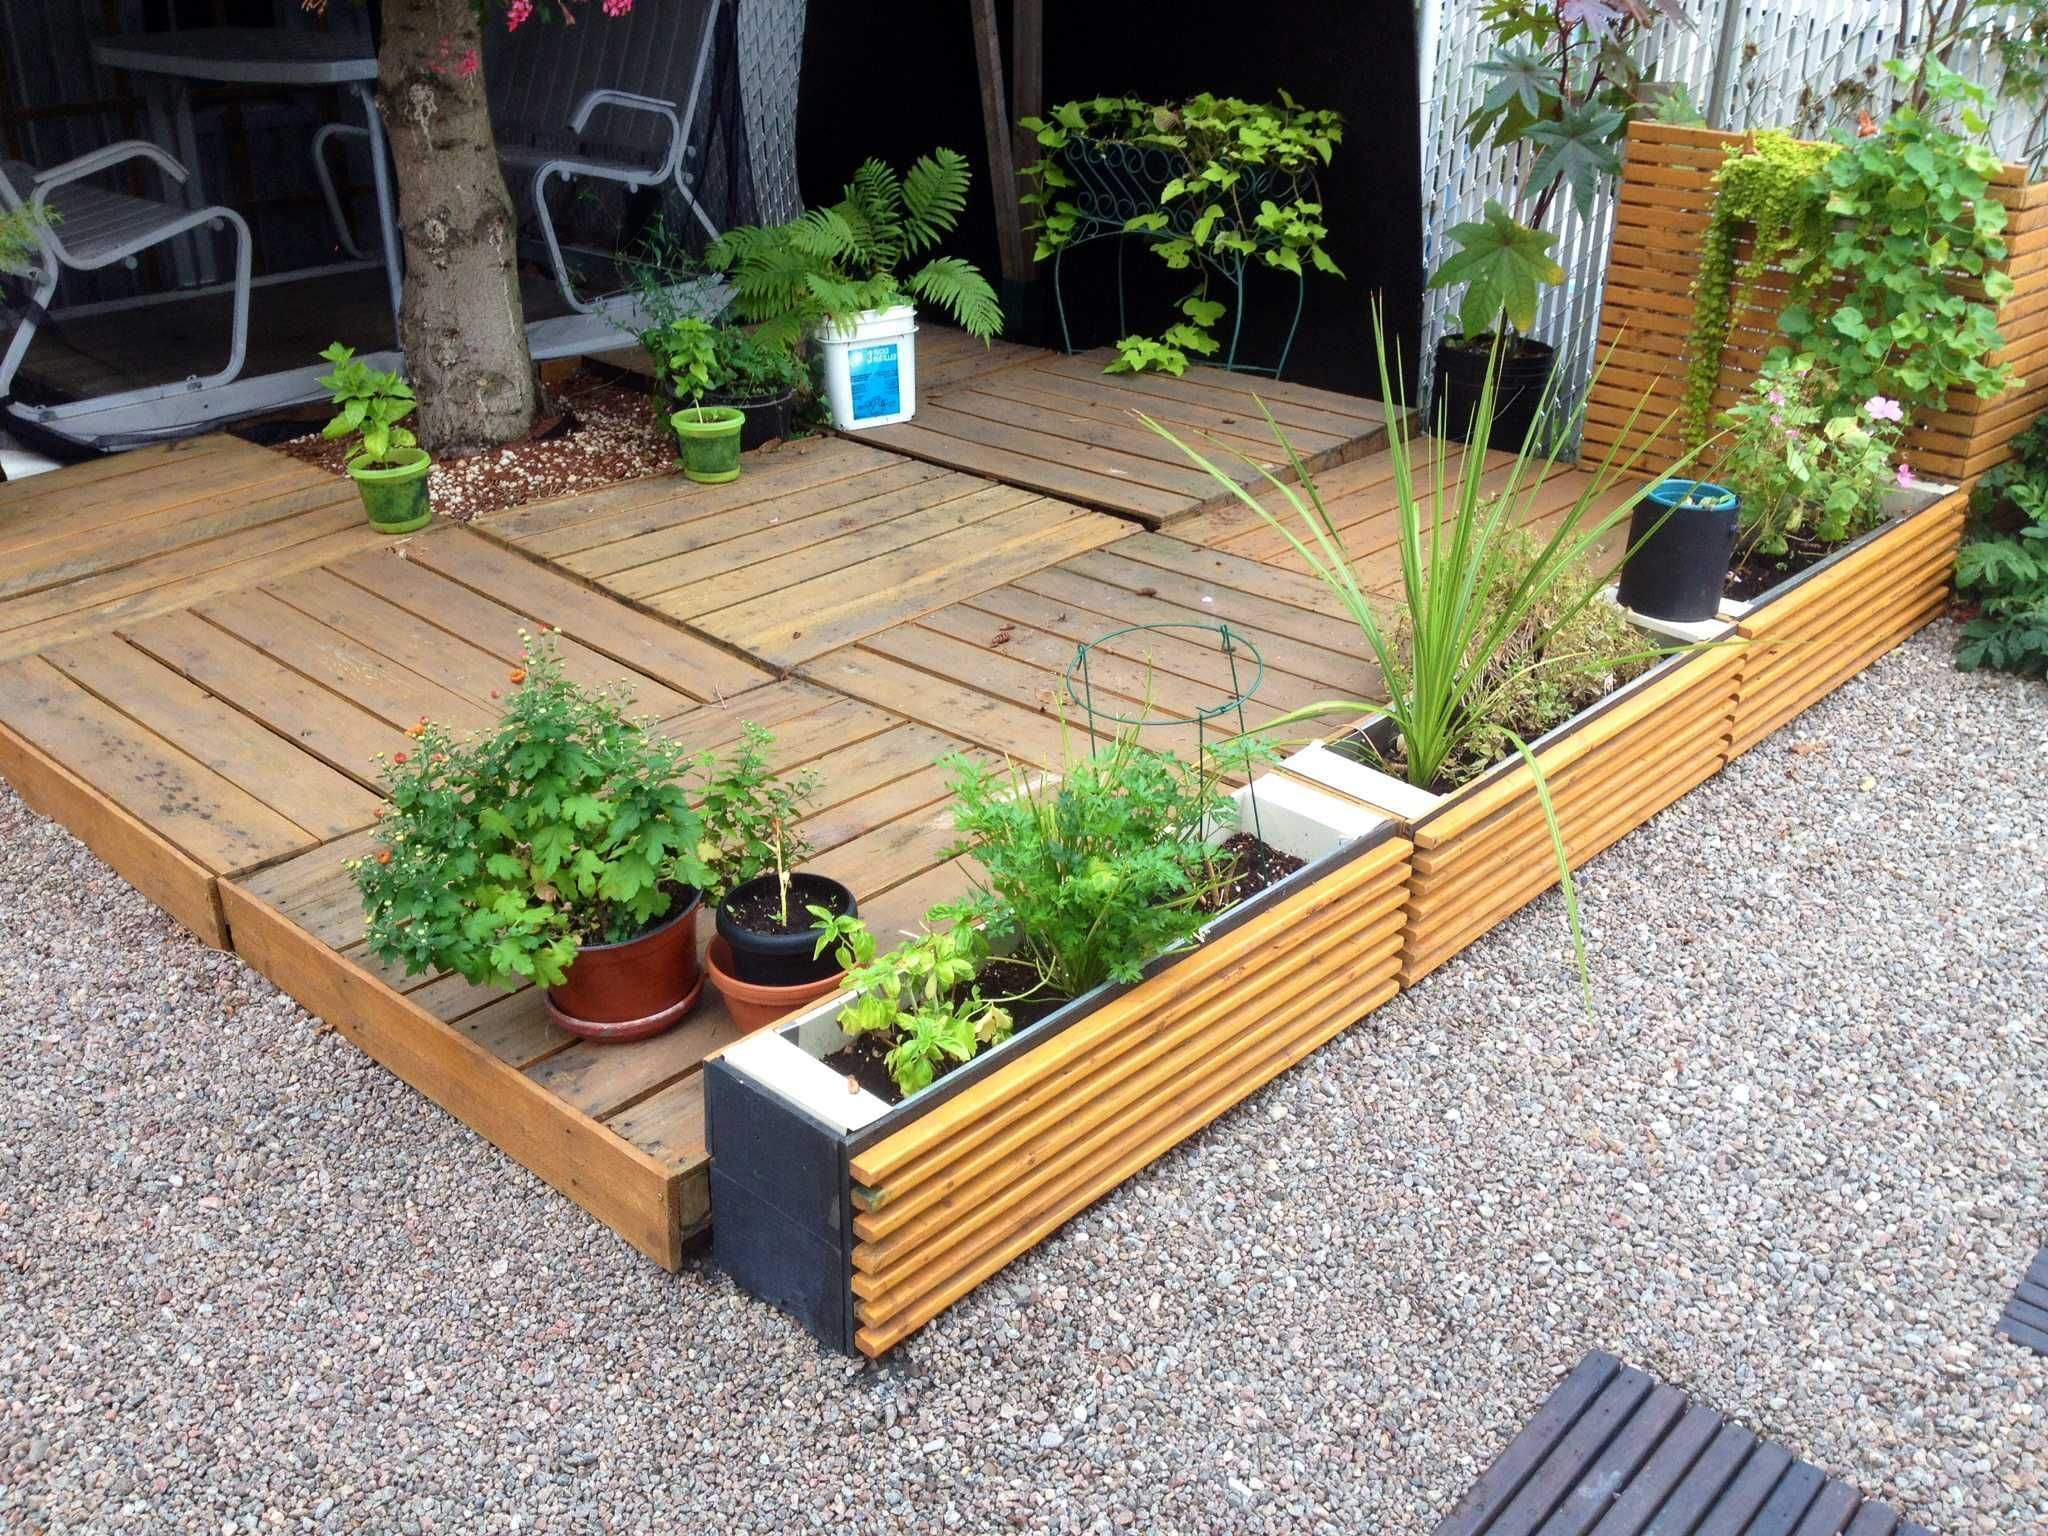 Terrace Deck & Planters Made From Recycled Pallets Wood Patio